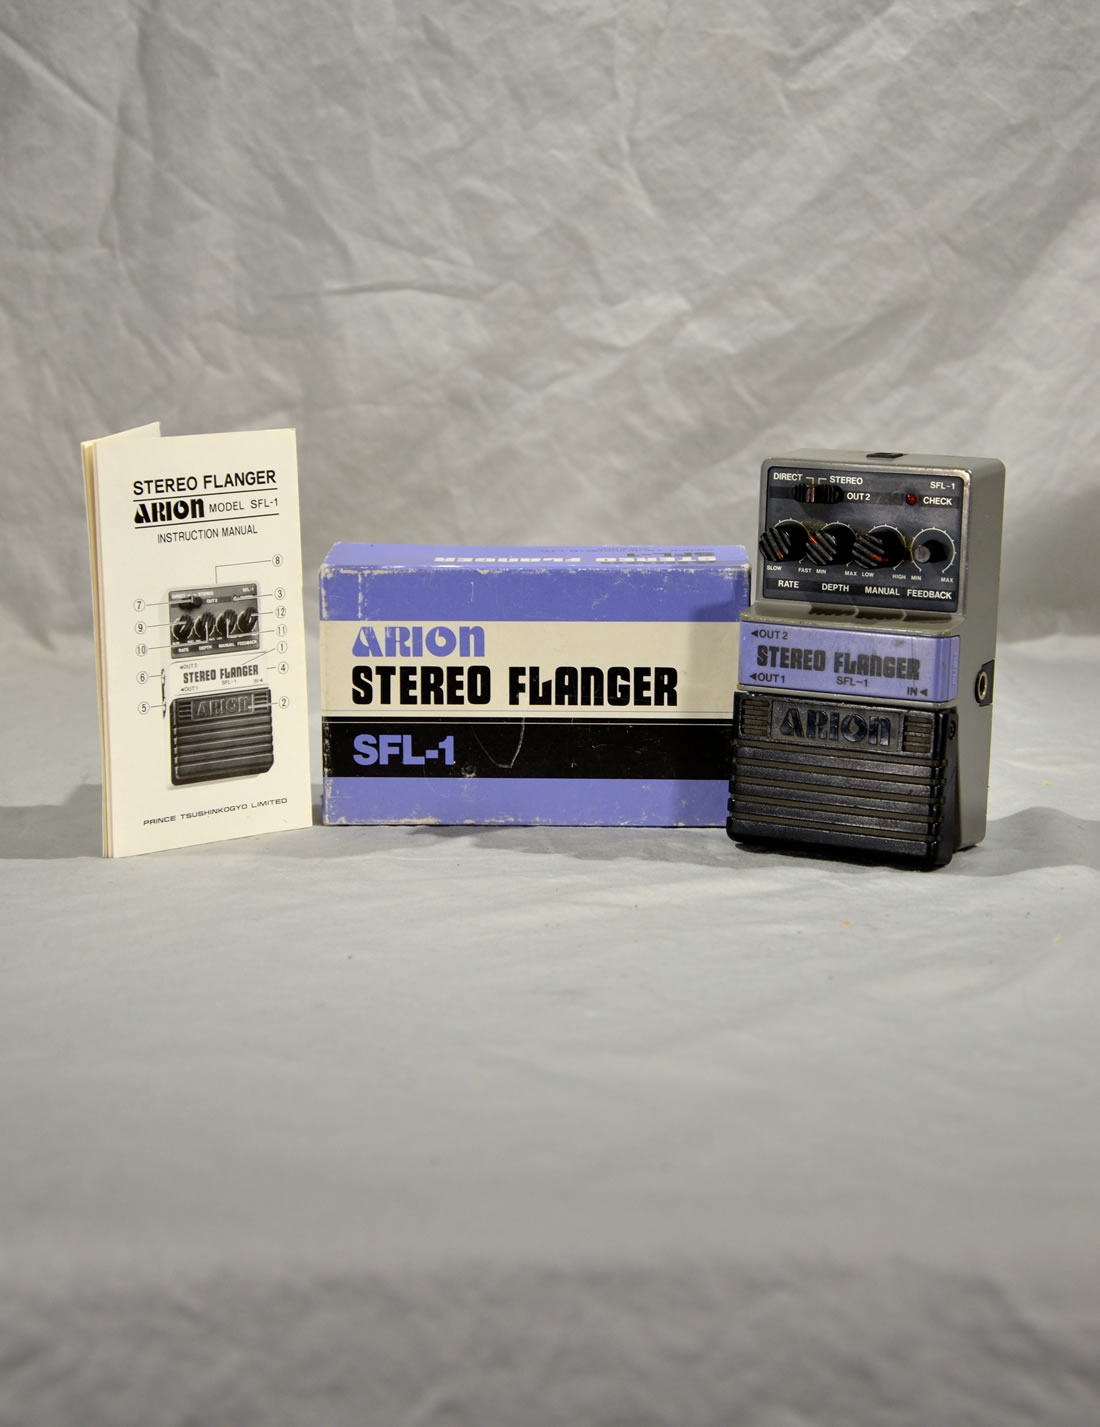 Arion Stereo Flanger SFL-1